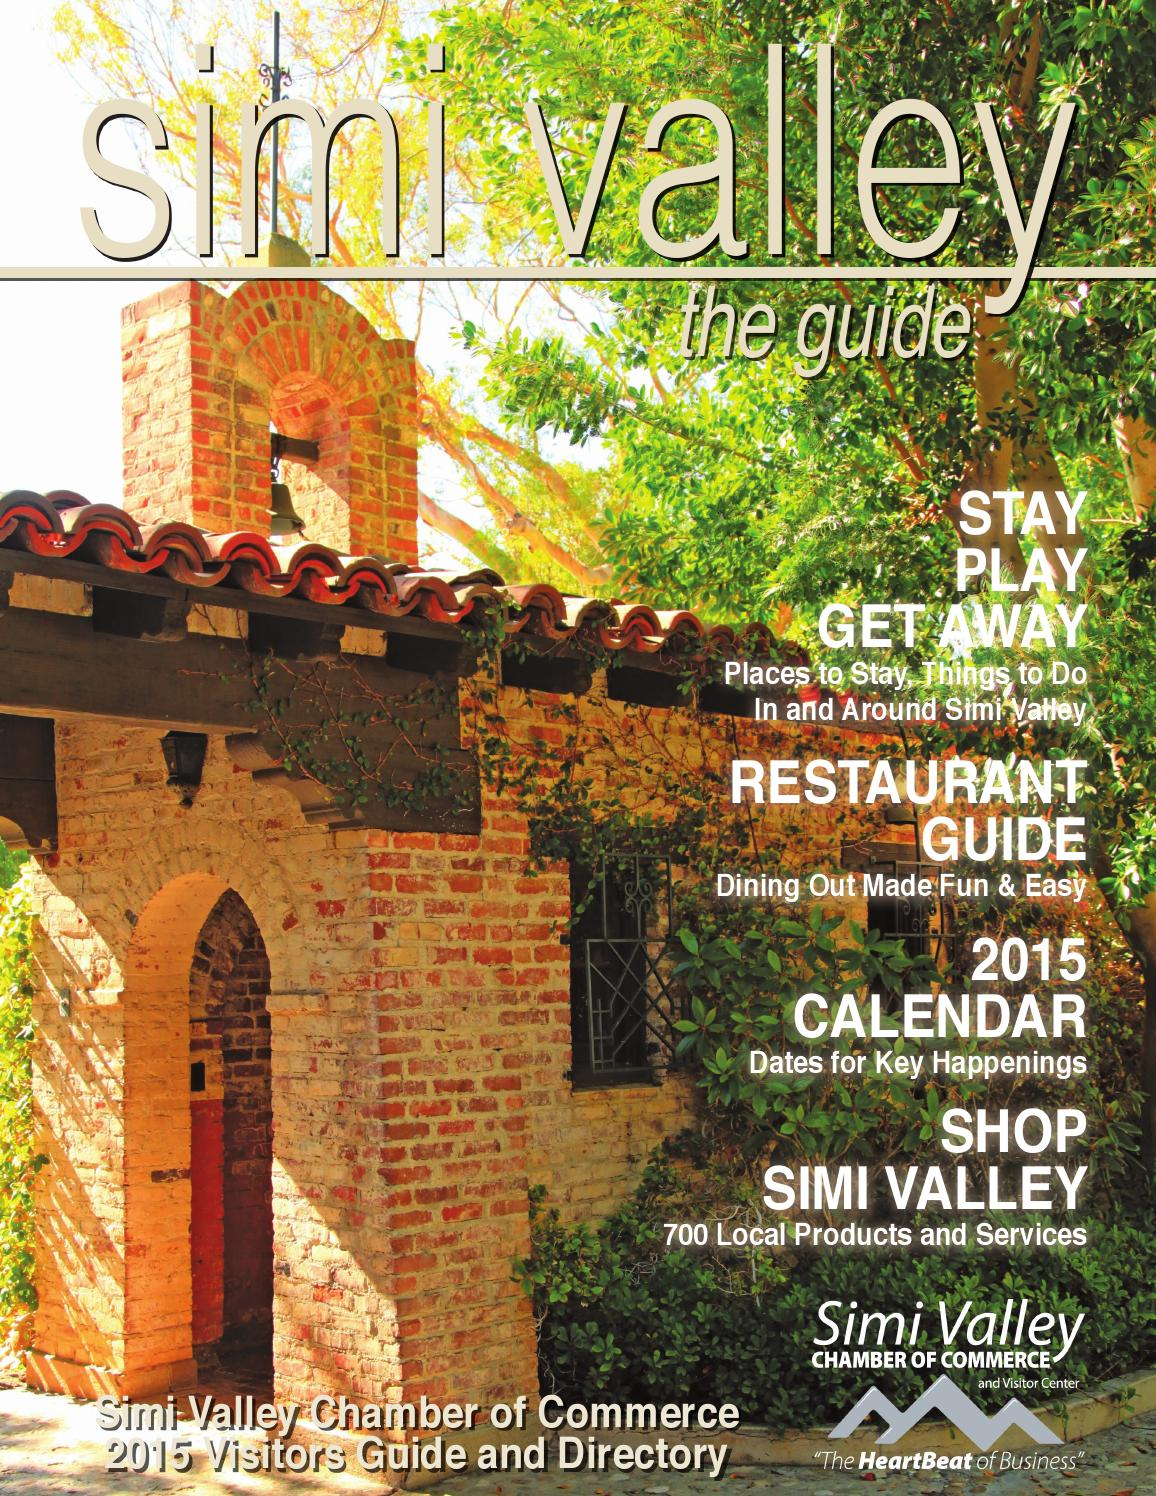 Simi valley chamber of commerce the guide 2015 by svcc2468 issuu solutioingenieria Choice Image